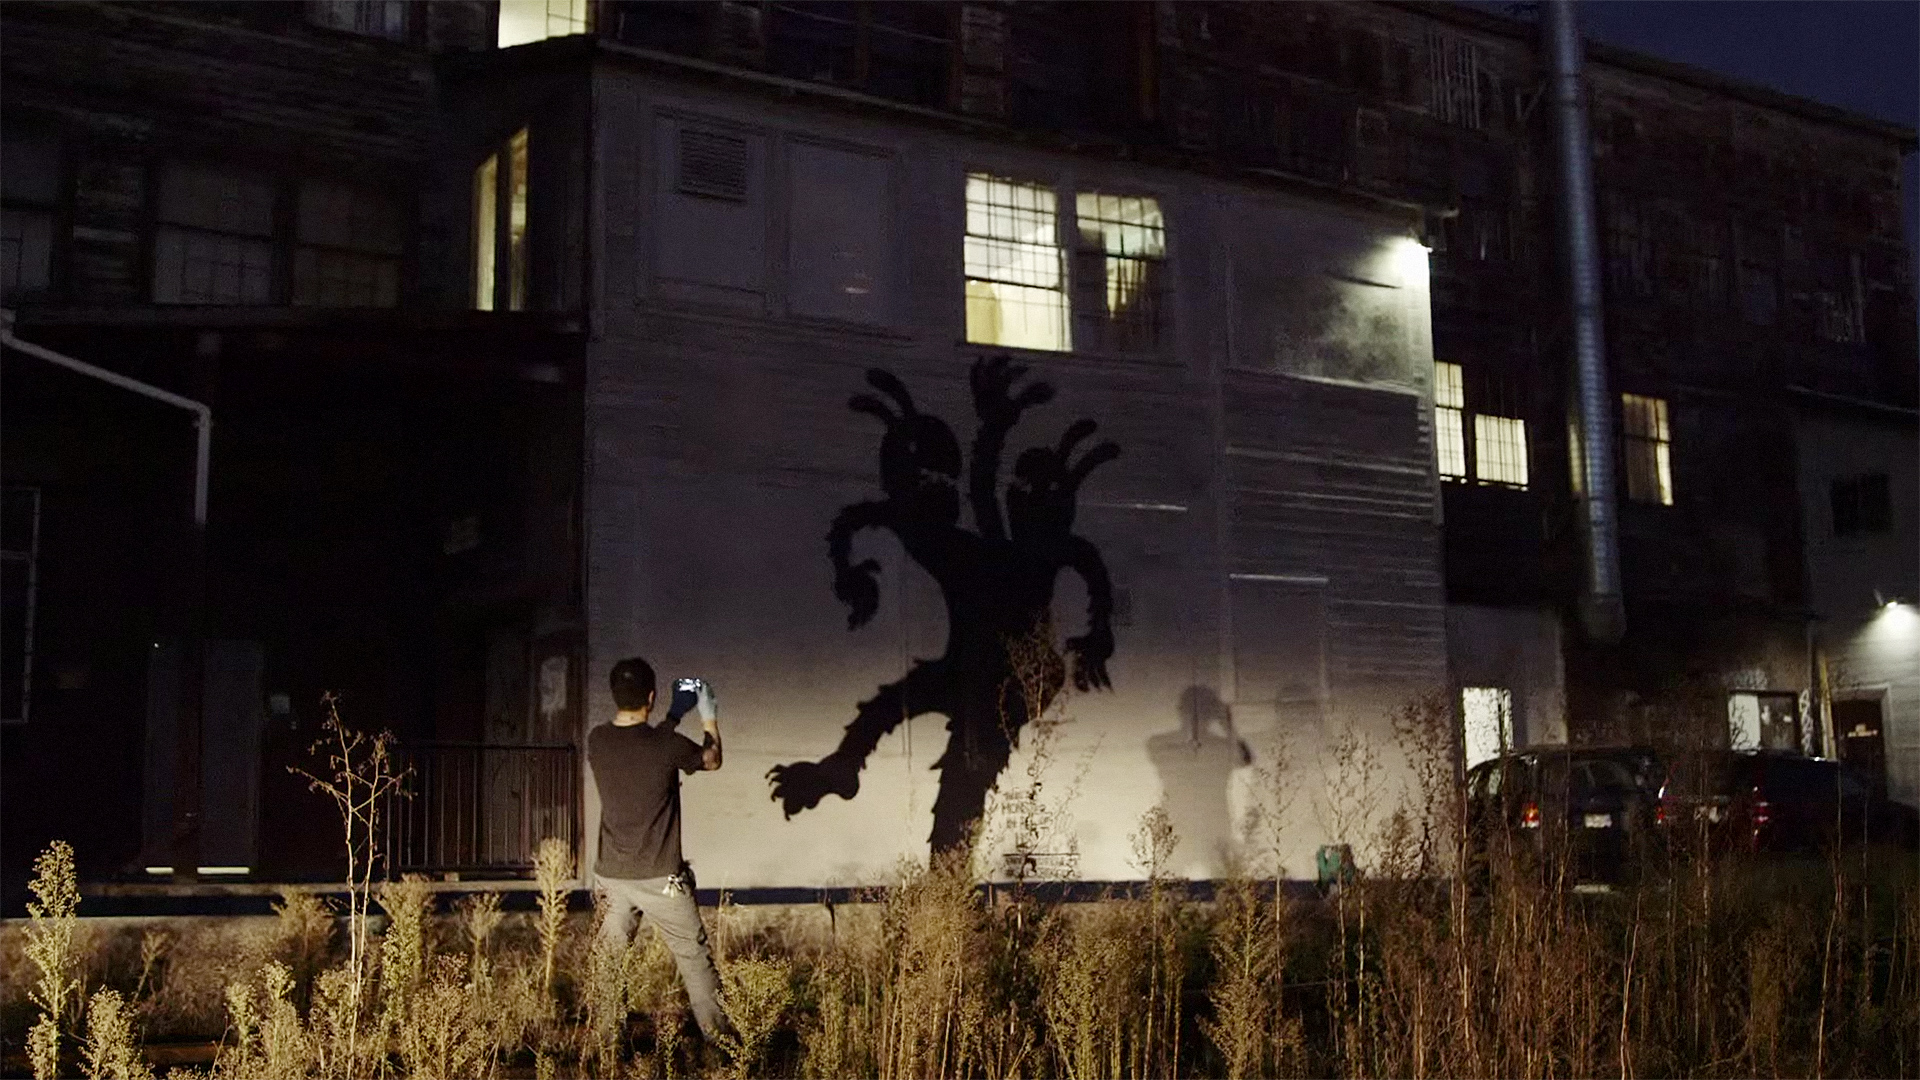 Graffiti Artists Bring Their Inner Demons To The Street To Promote A New Opera About Bullying